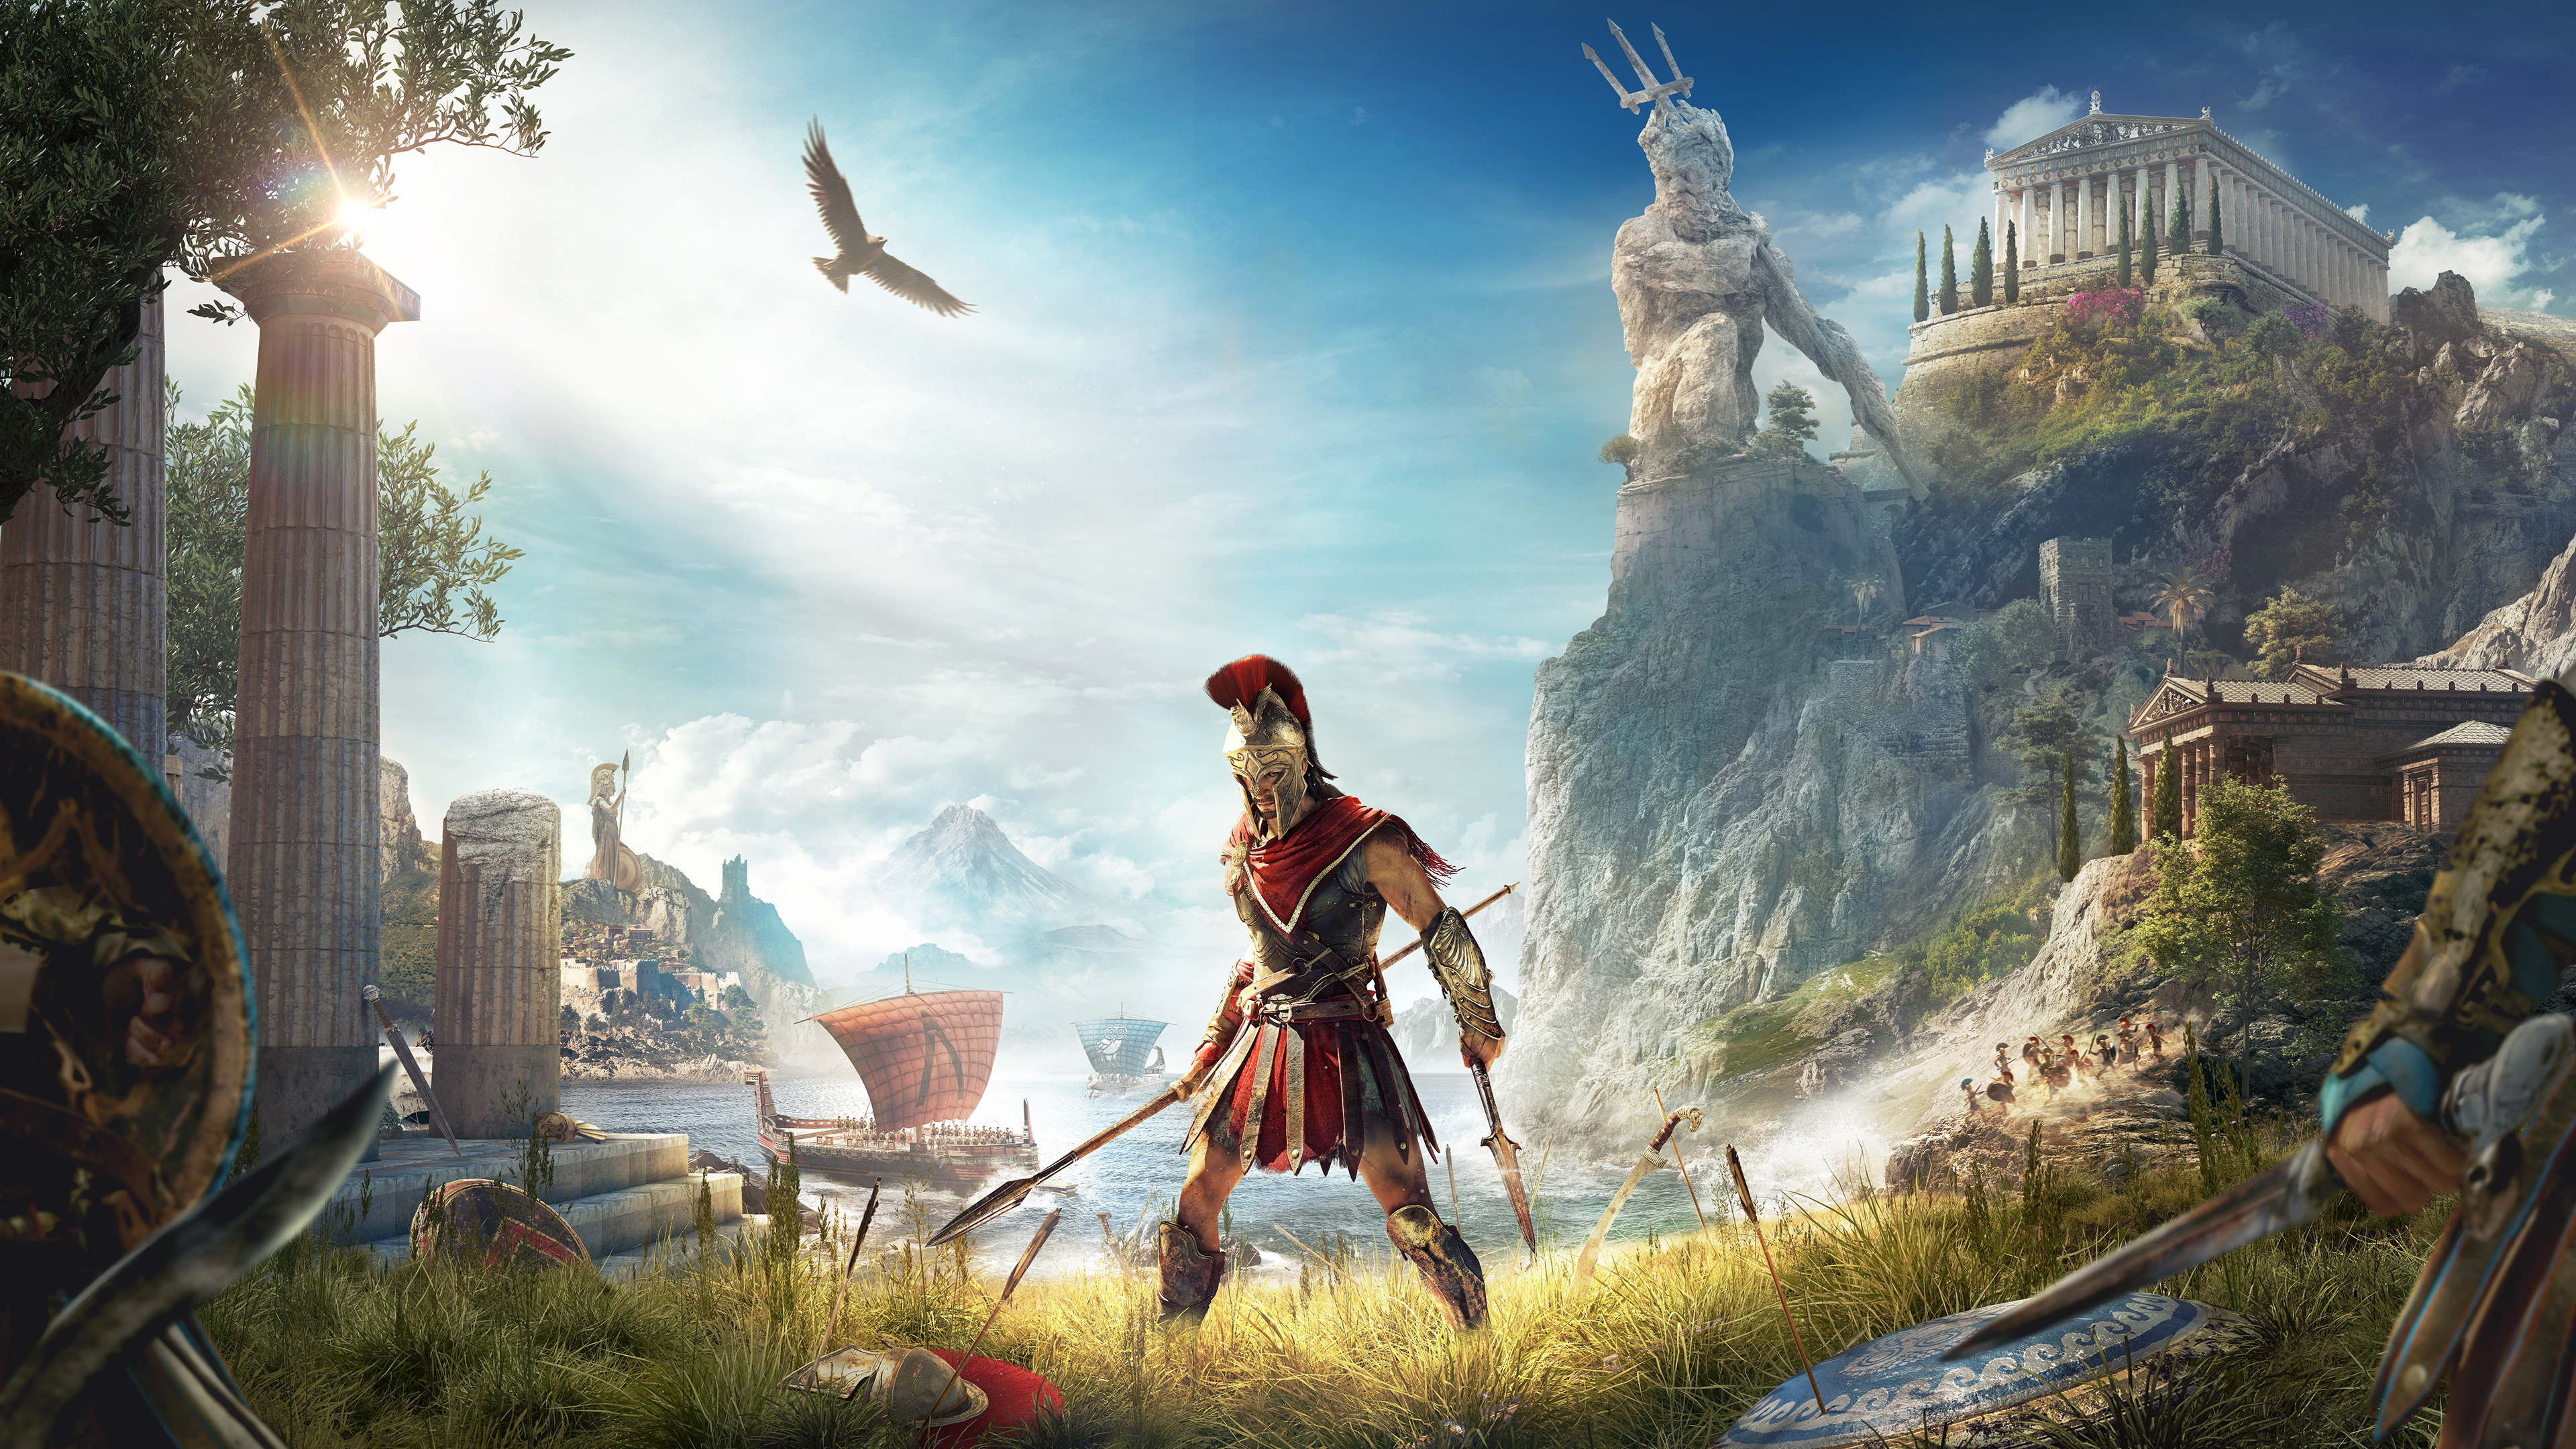 Assassins Creed Odyssey 2018 4k, HD Games, 4k Wallpapers